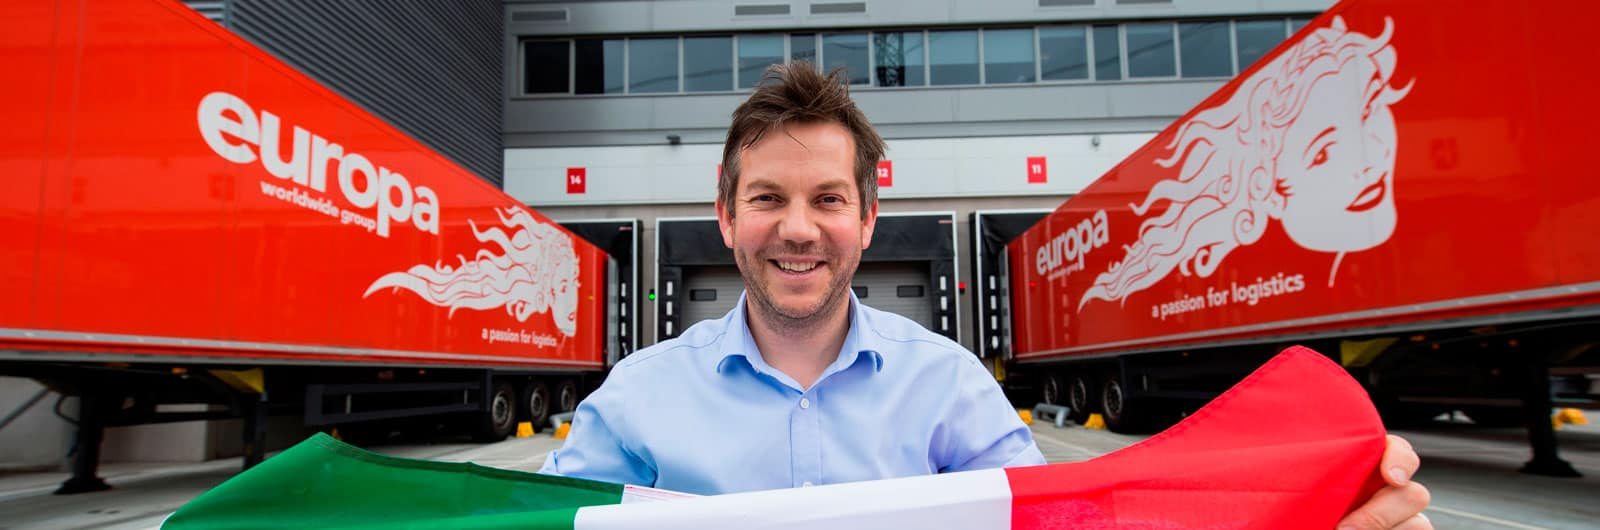 Dan Cook, Operations Director for Europa Worldwide Group